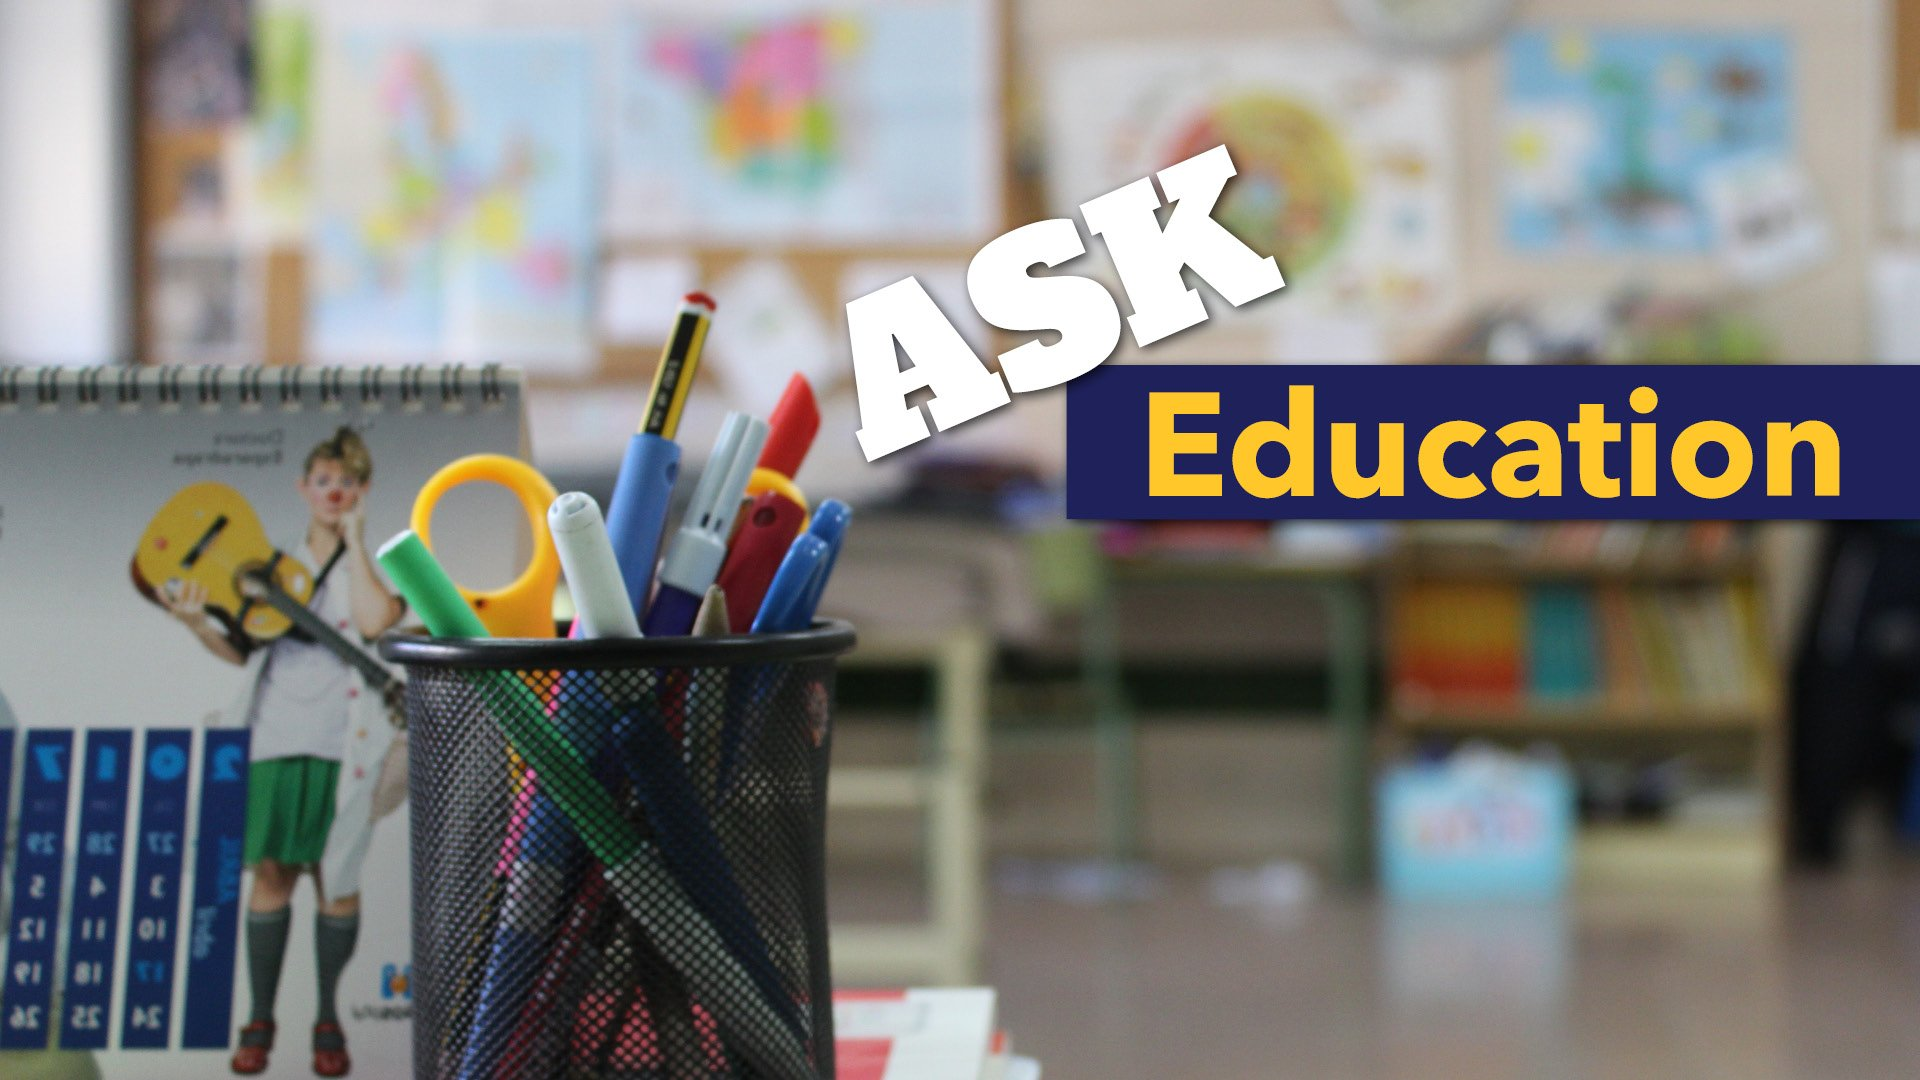 Ask Education